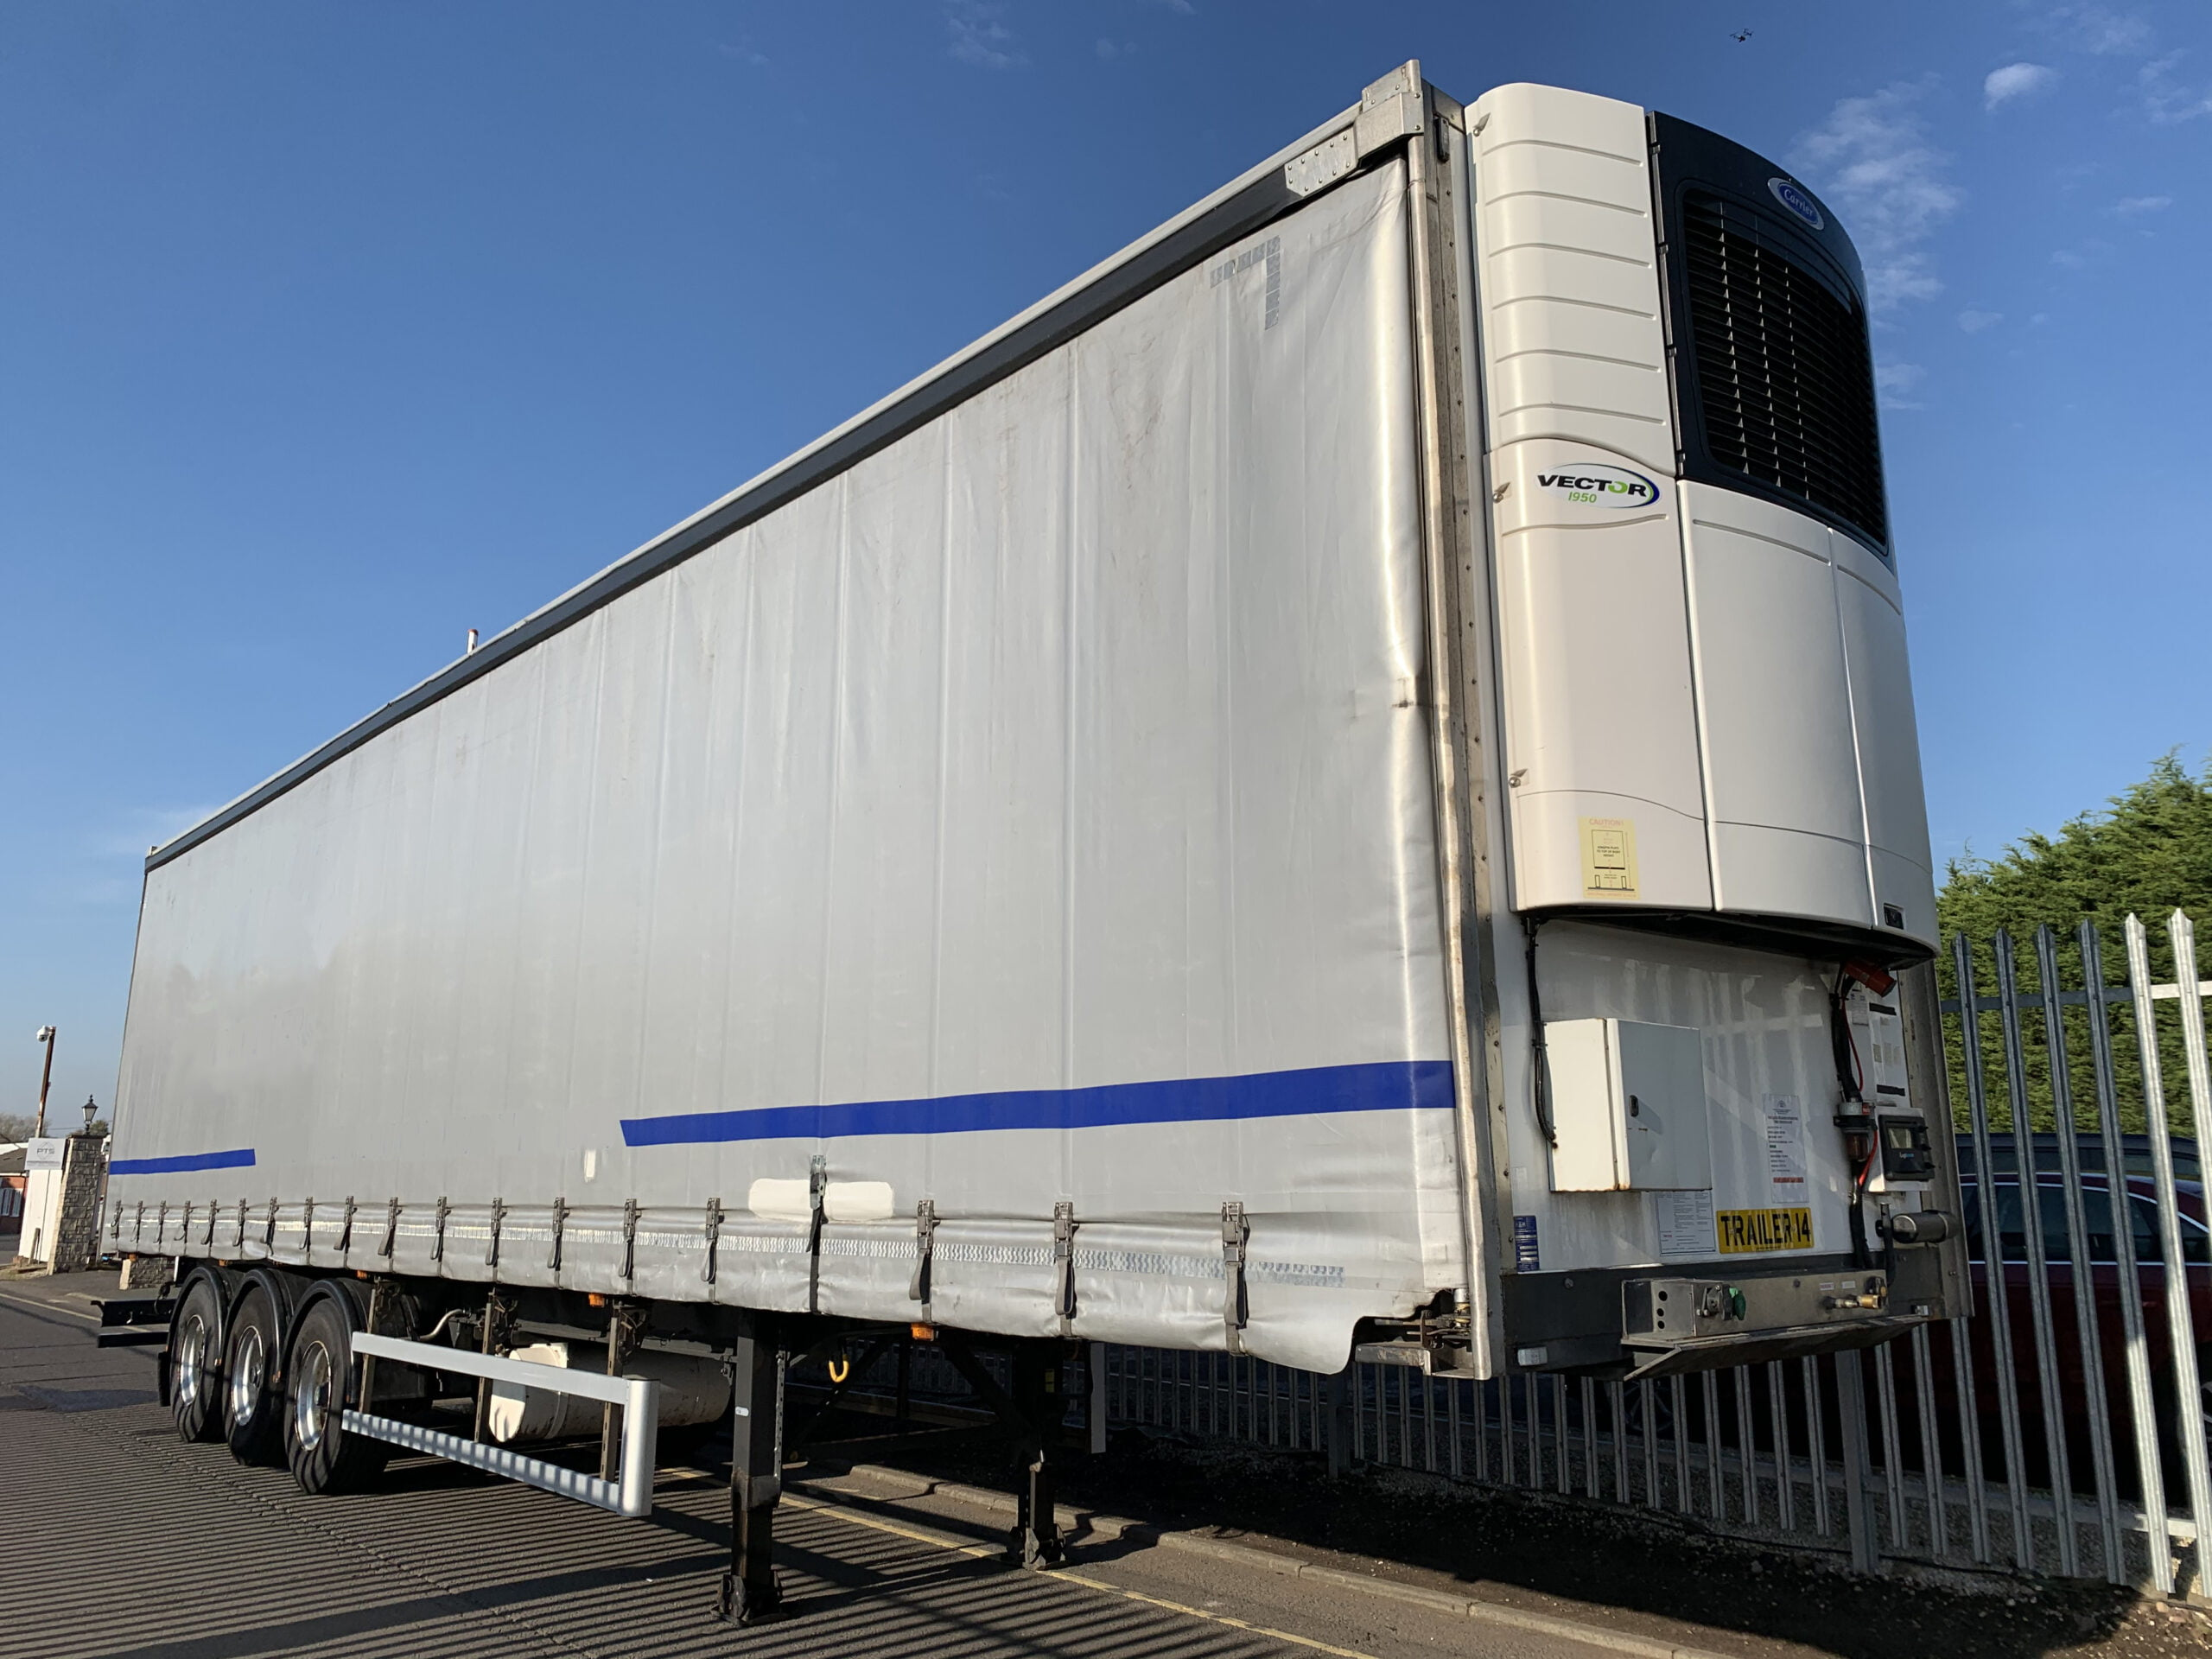 2017 Gray & Adams Insuliner, 4.65m External Height, 2.9m Internal Height, BPW Axles, Drum Brakes, Aluminium Floor, No Rear Access, Carrier Vector 1950 Fridge Engine, 5822 Engine Hours, 8501 Total Hours, Internal Fixed Deck, Raise Lower Valve Facility.